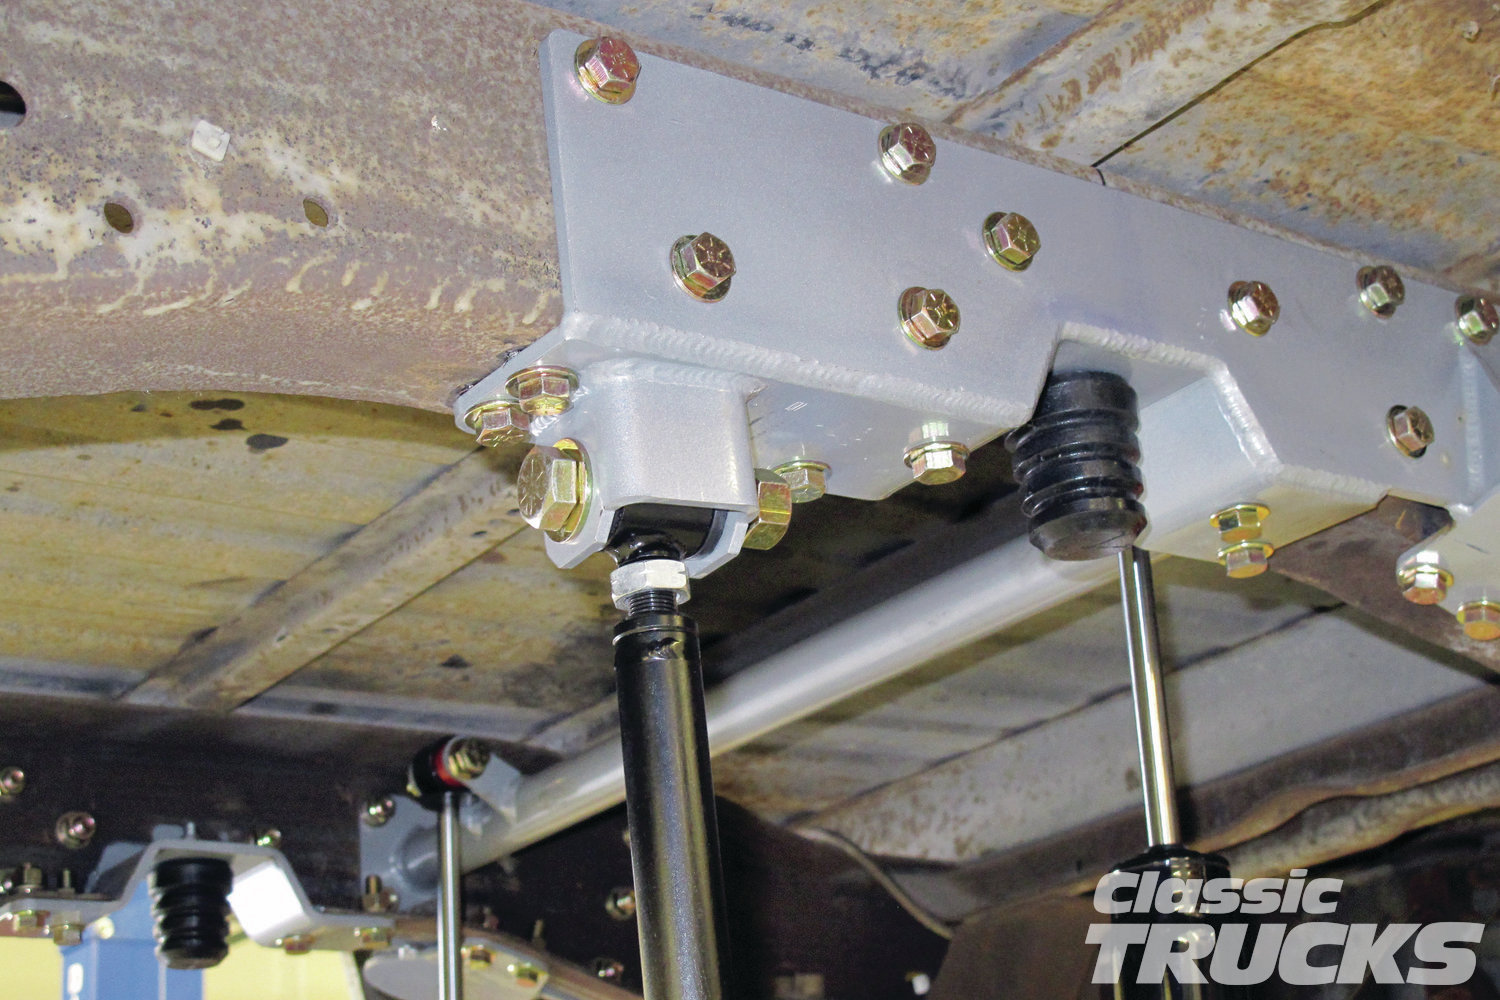 9. With the holes drilled on both sides, the next step was to install the upper shock crossbar from one end to the other. It is also a good time to install the soft rubber bumpstops for the rearend. The bar hanging down on the left is the Panhard bar; this will mount on the rearend via a welded on bracket.